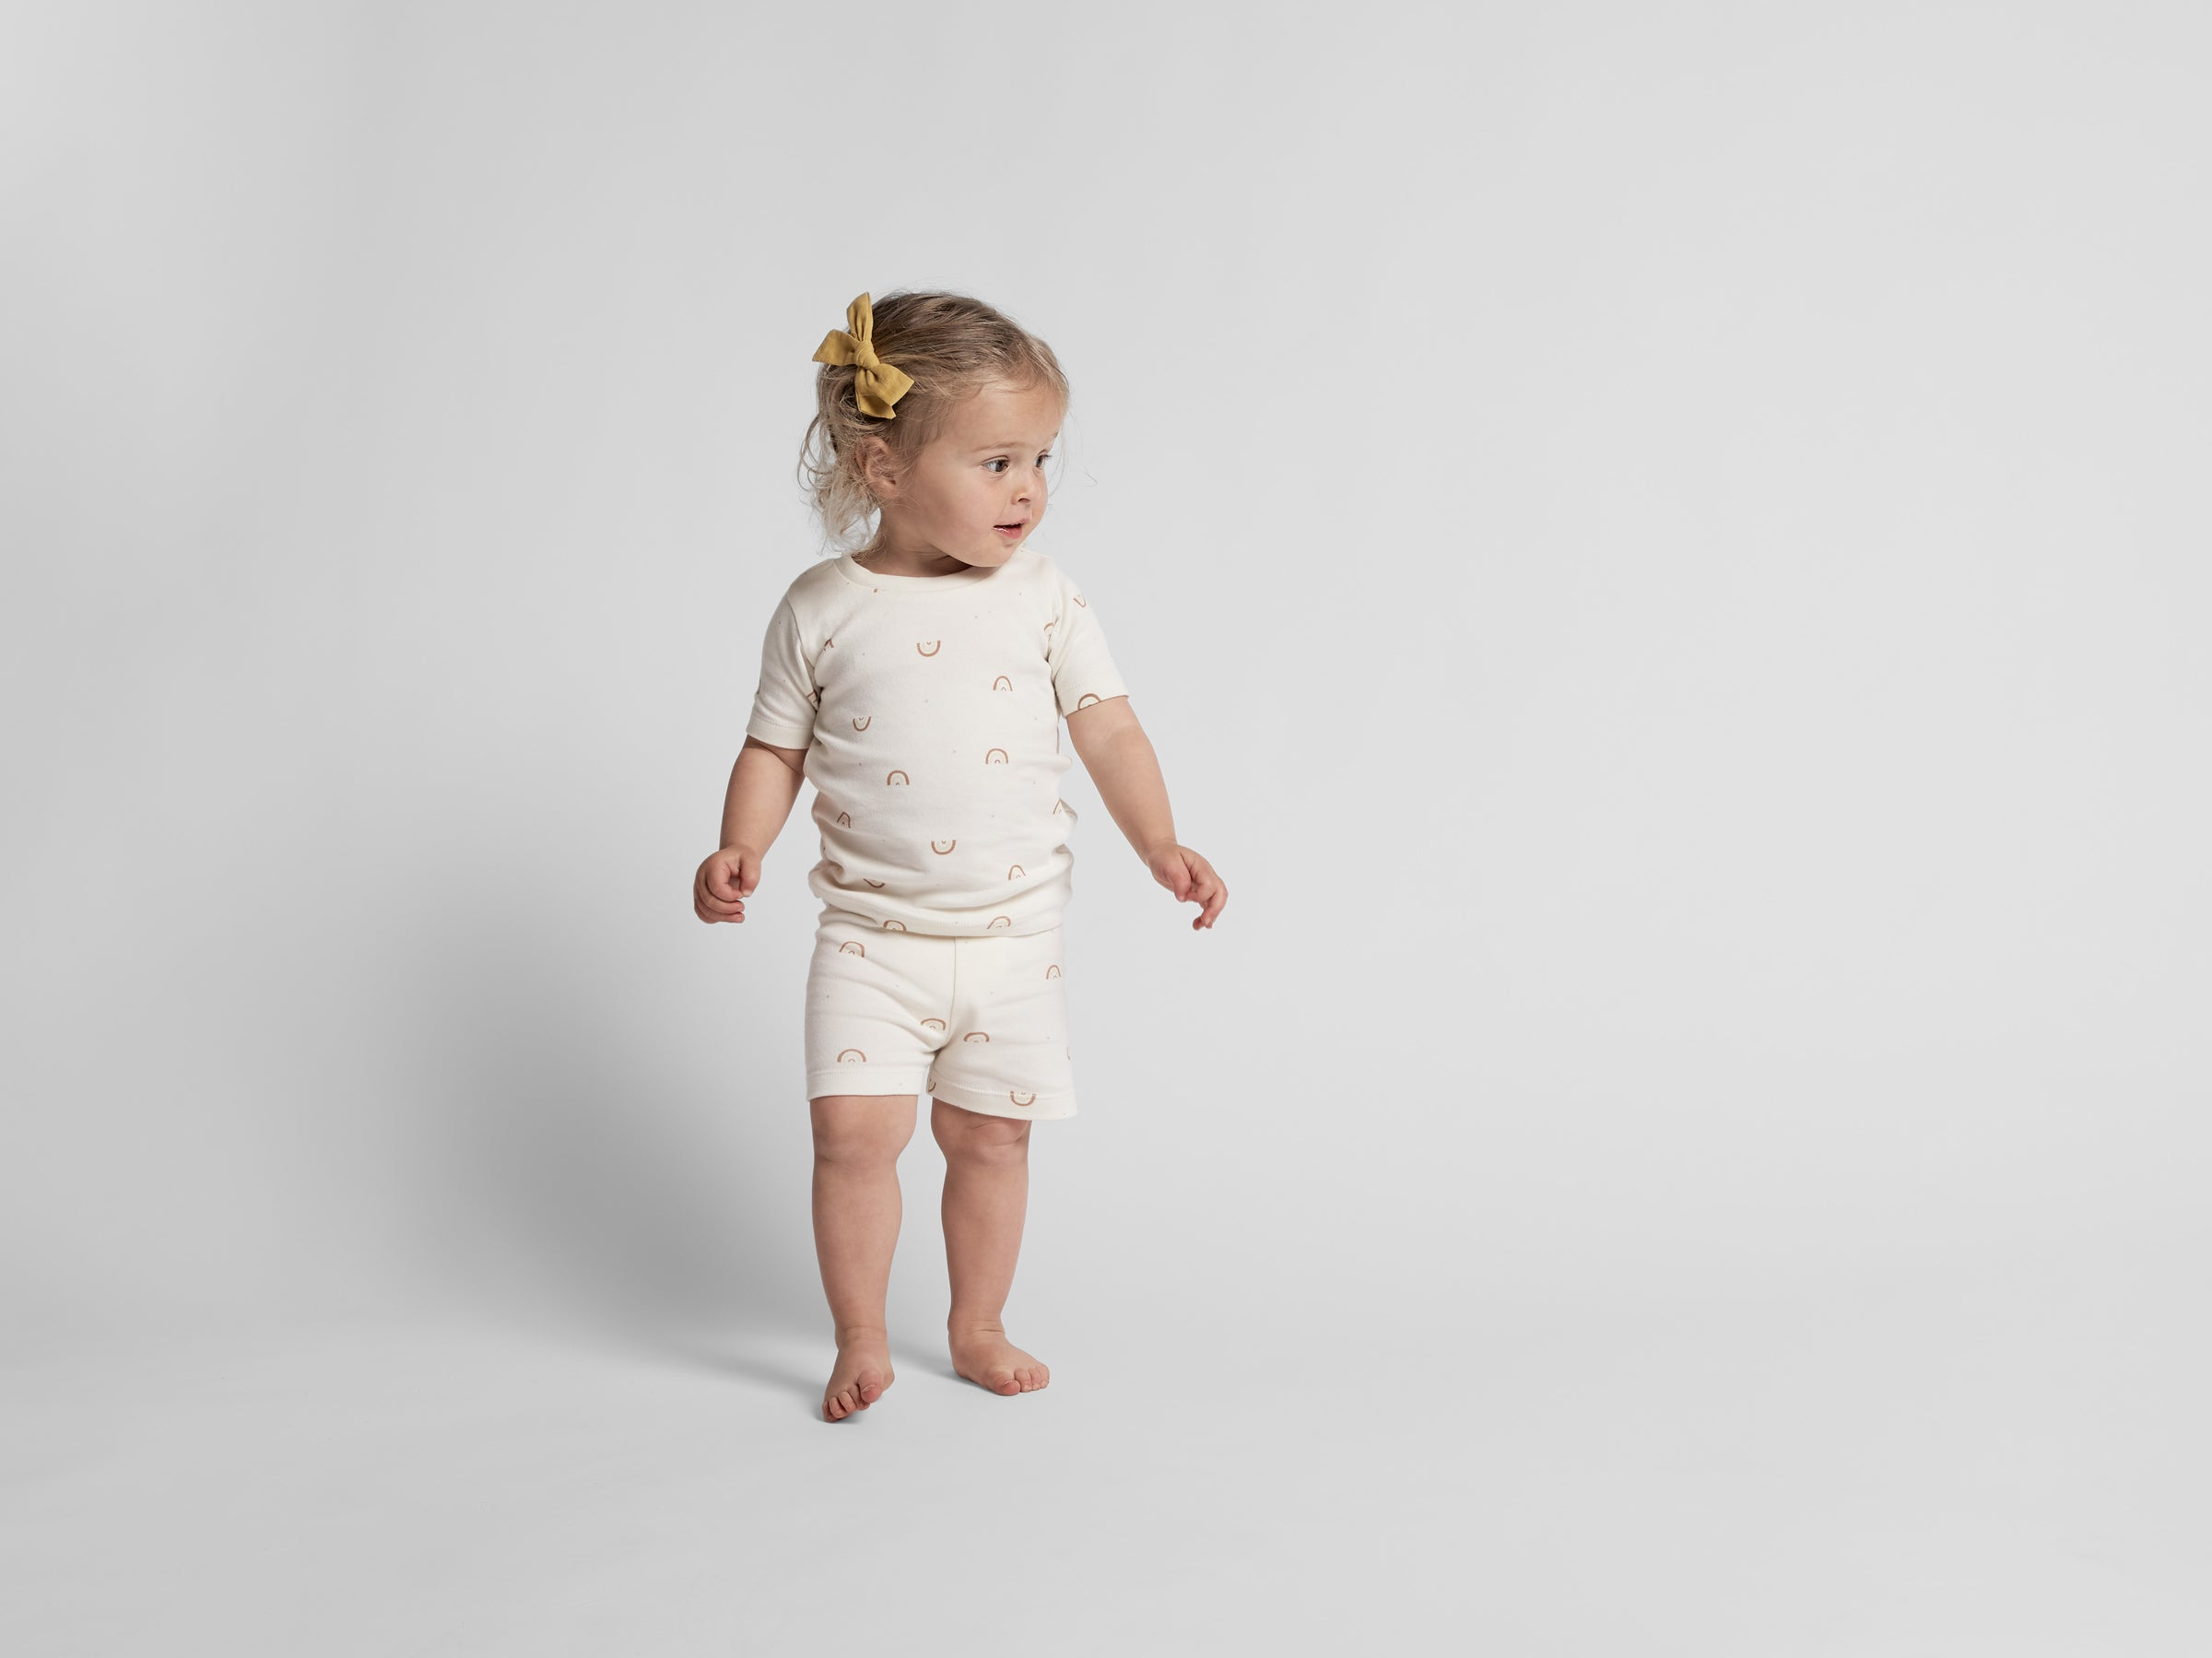 White Rainbow Pajama Set Shown In A Room